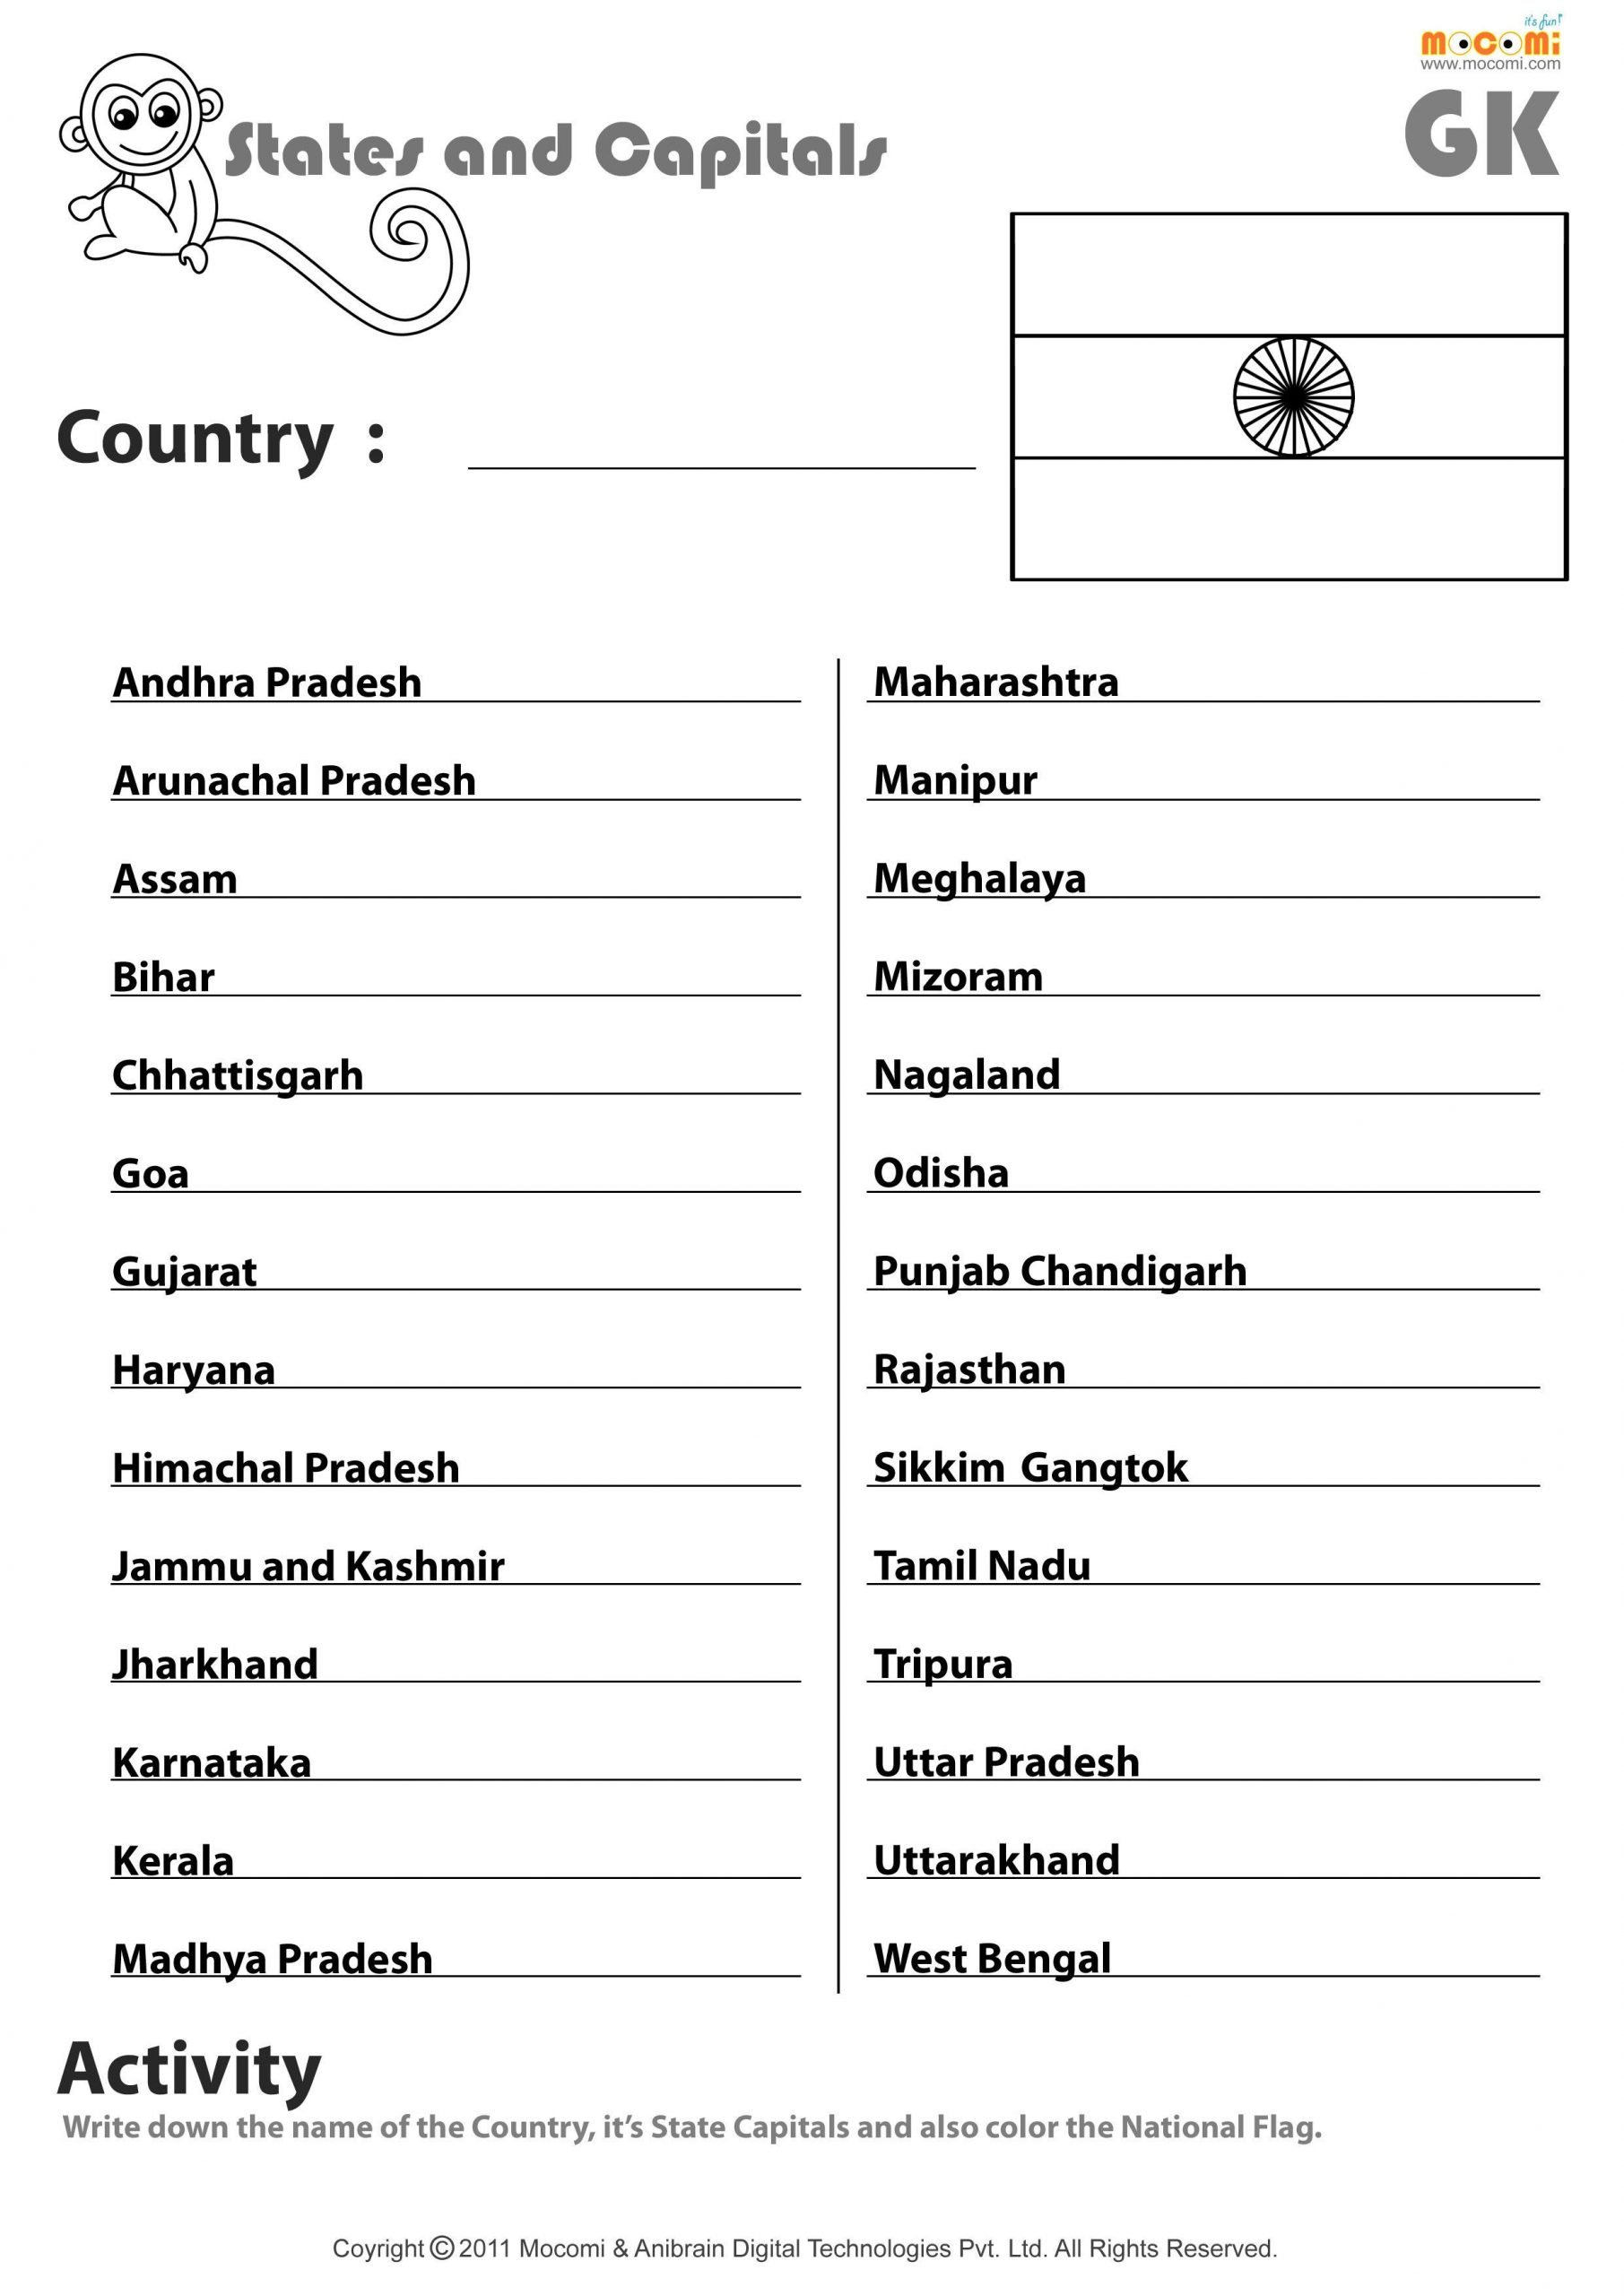 States and Capitals Quiz Worksheet Indian States and their Capitals English Worksheets for